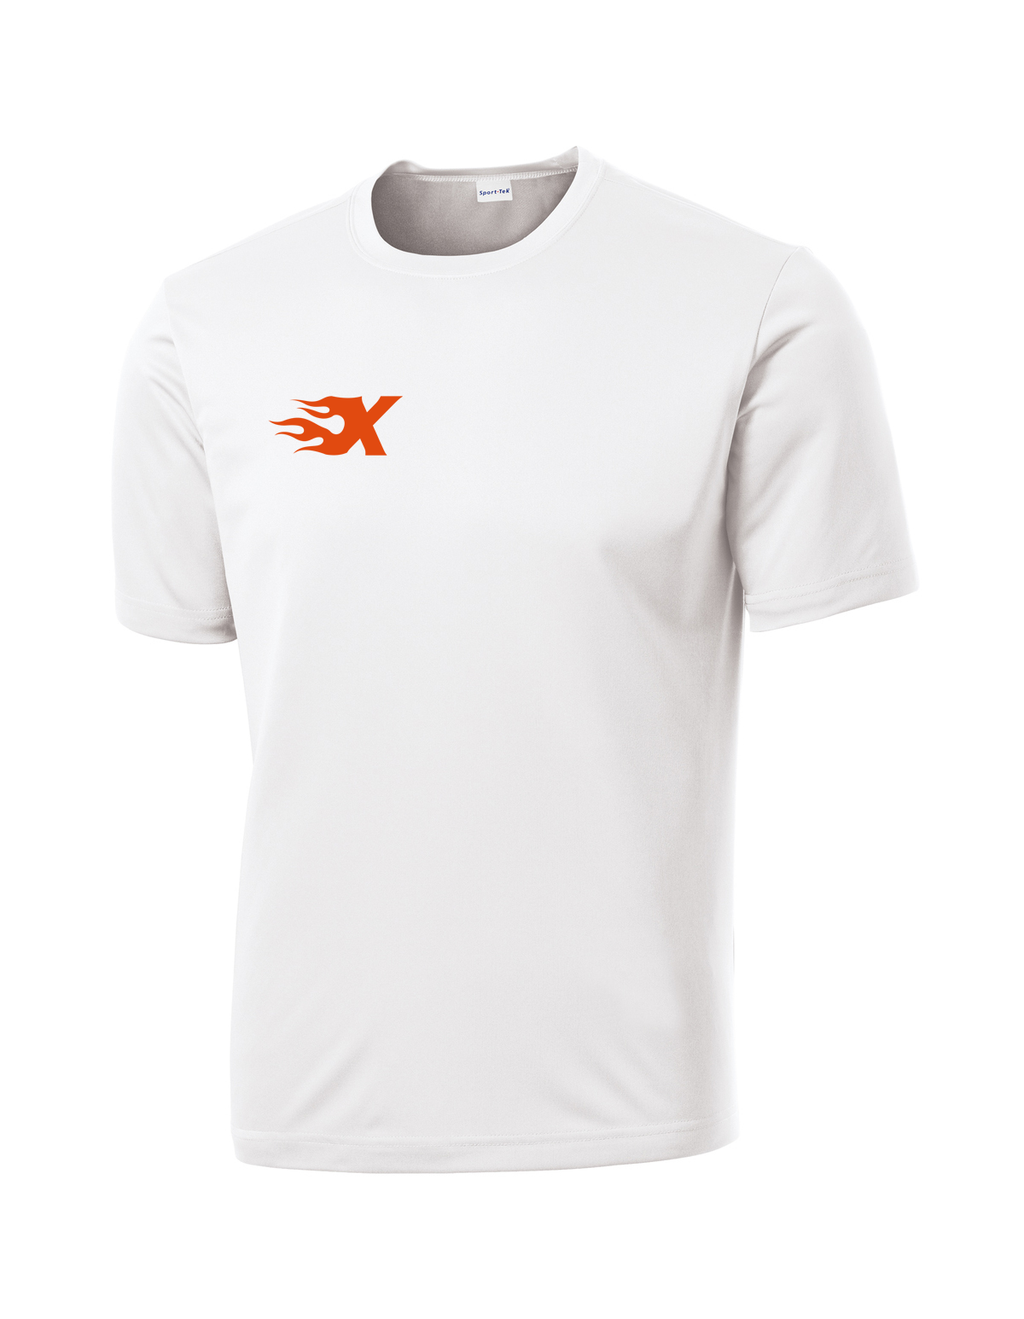 Xtreme Lacrosse White Performance T-Shirt